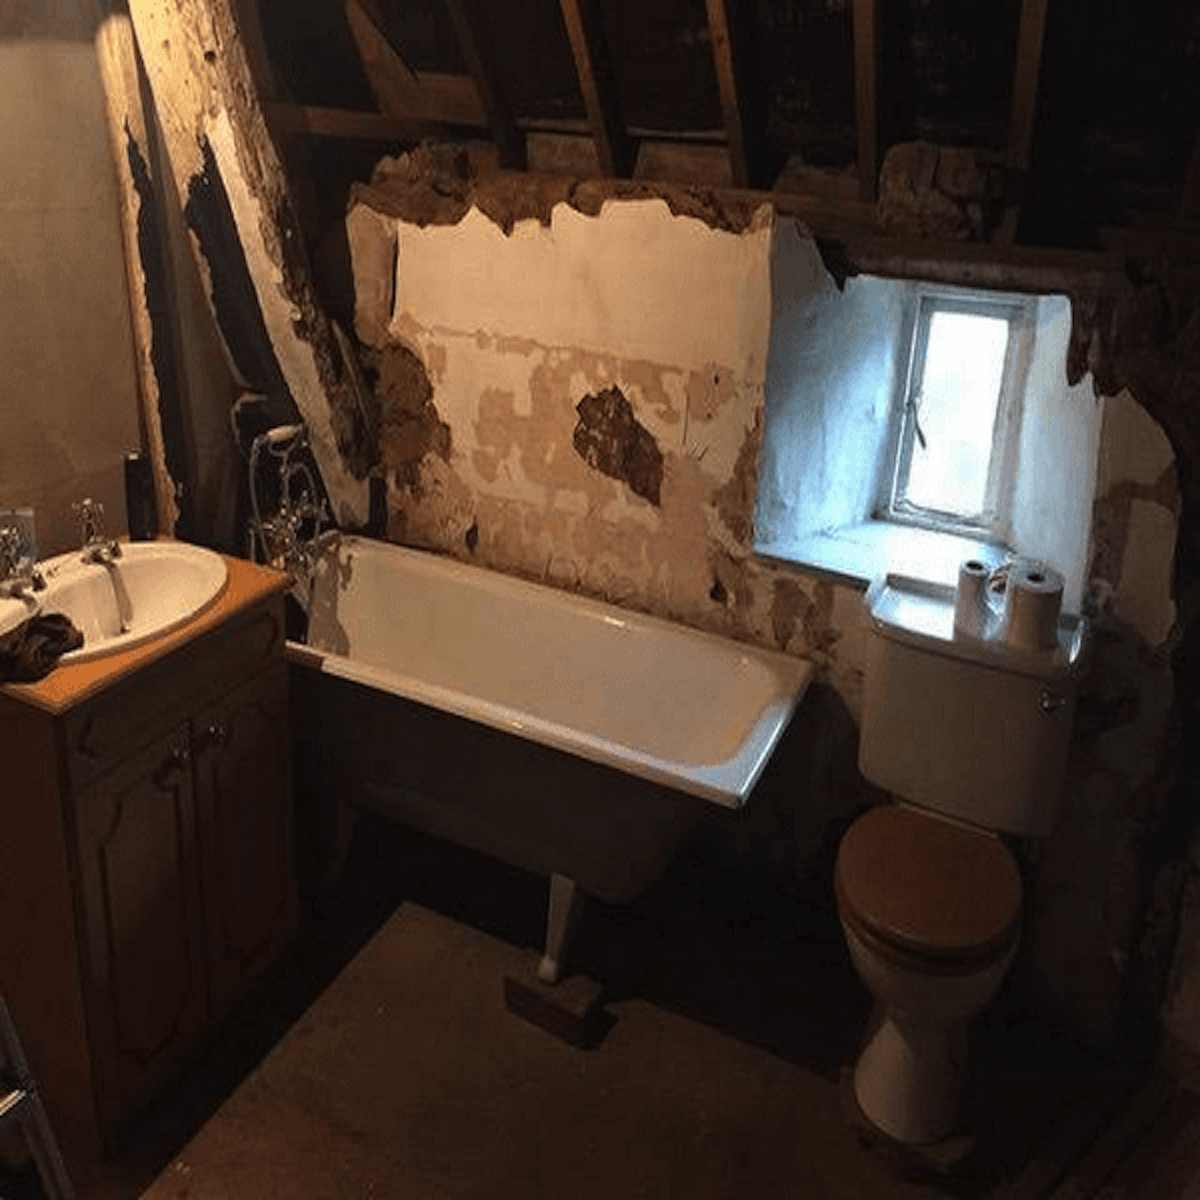 Bathroom redesign and remodeling project in Wardington OX17-Oxfordshire